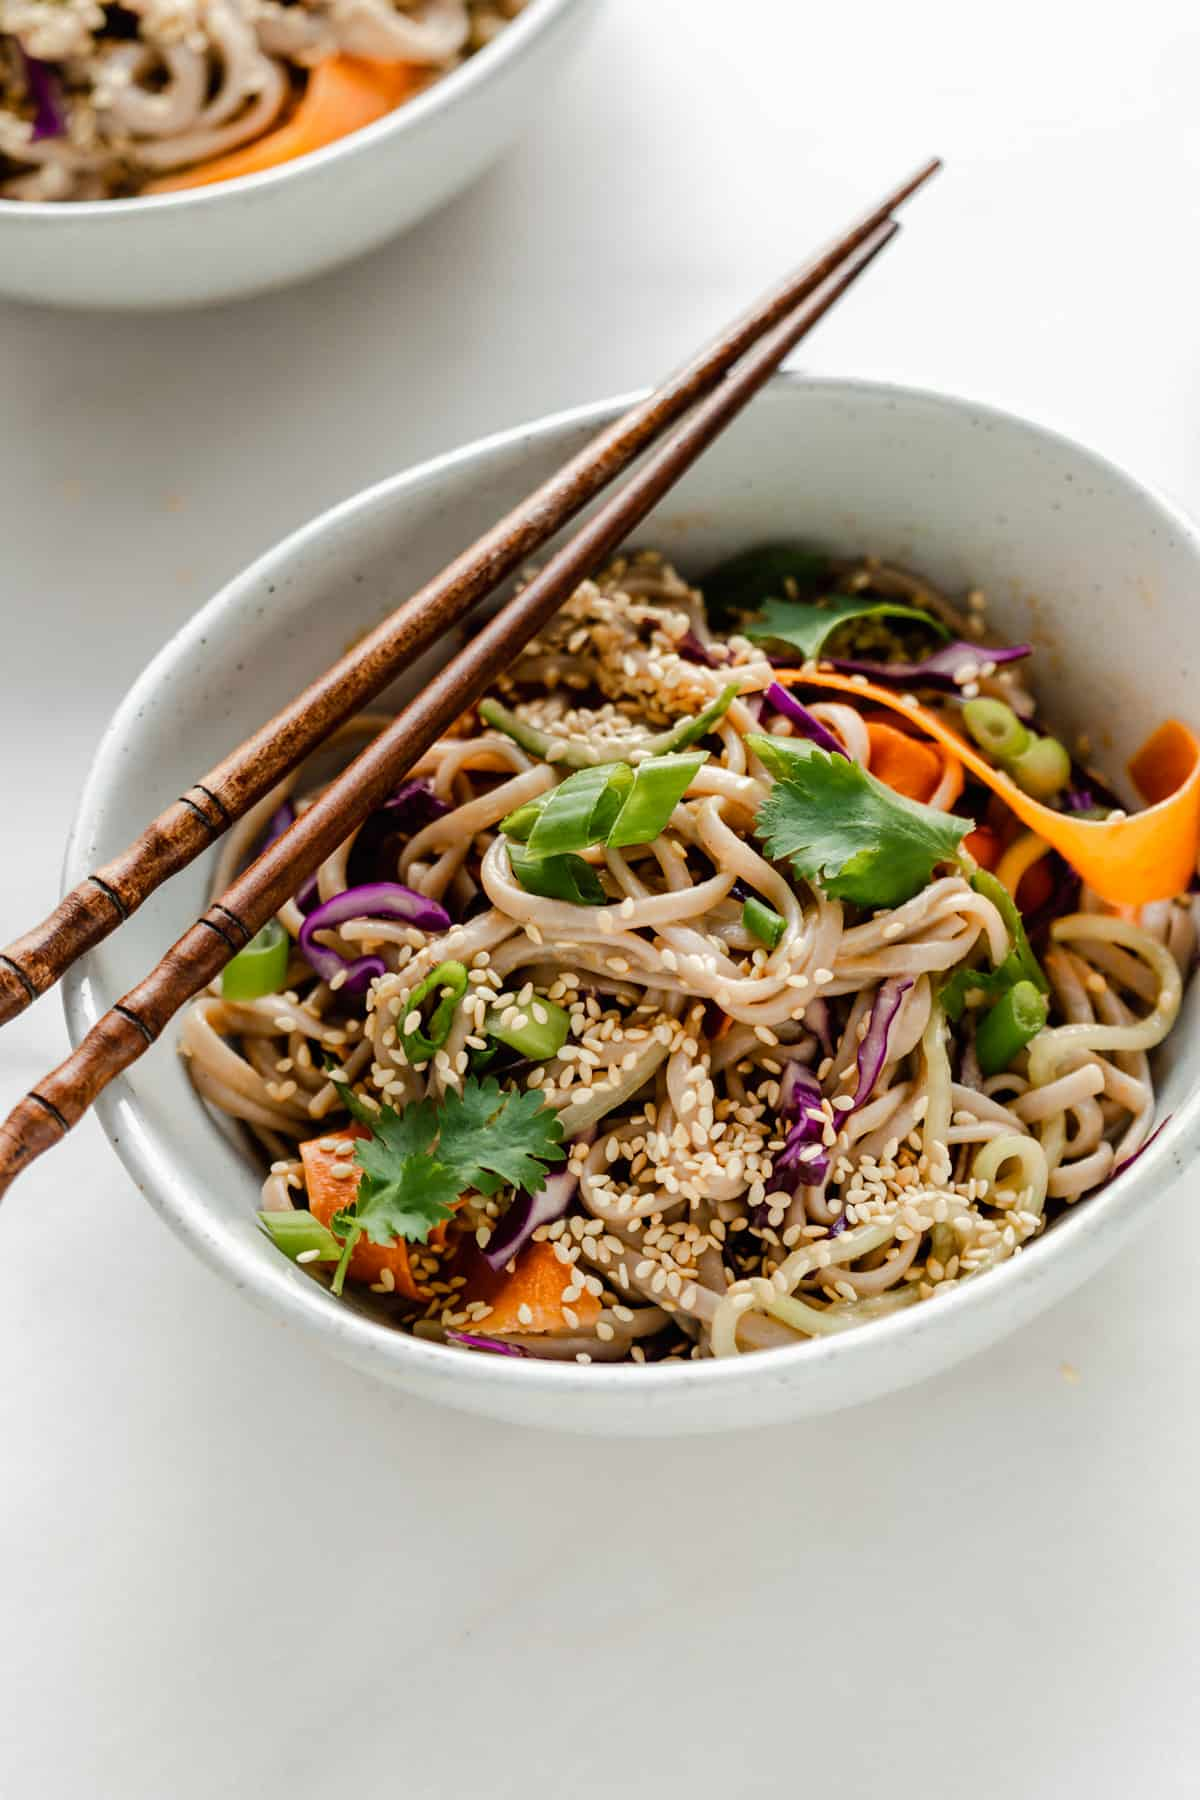 Soba noodle salad with peanut sauce in a white ceramic bowl with wood chopsticks on top